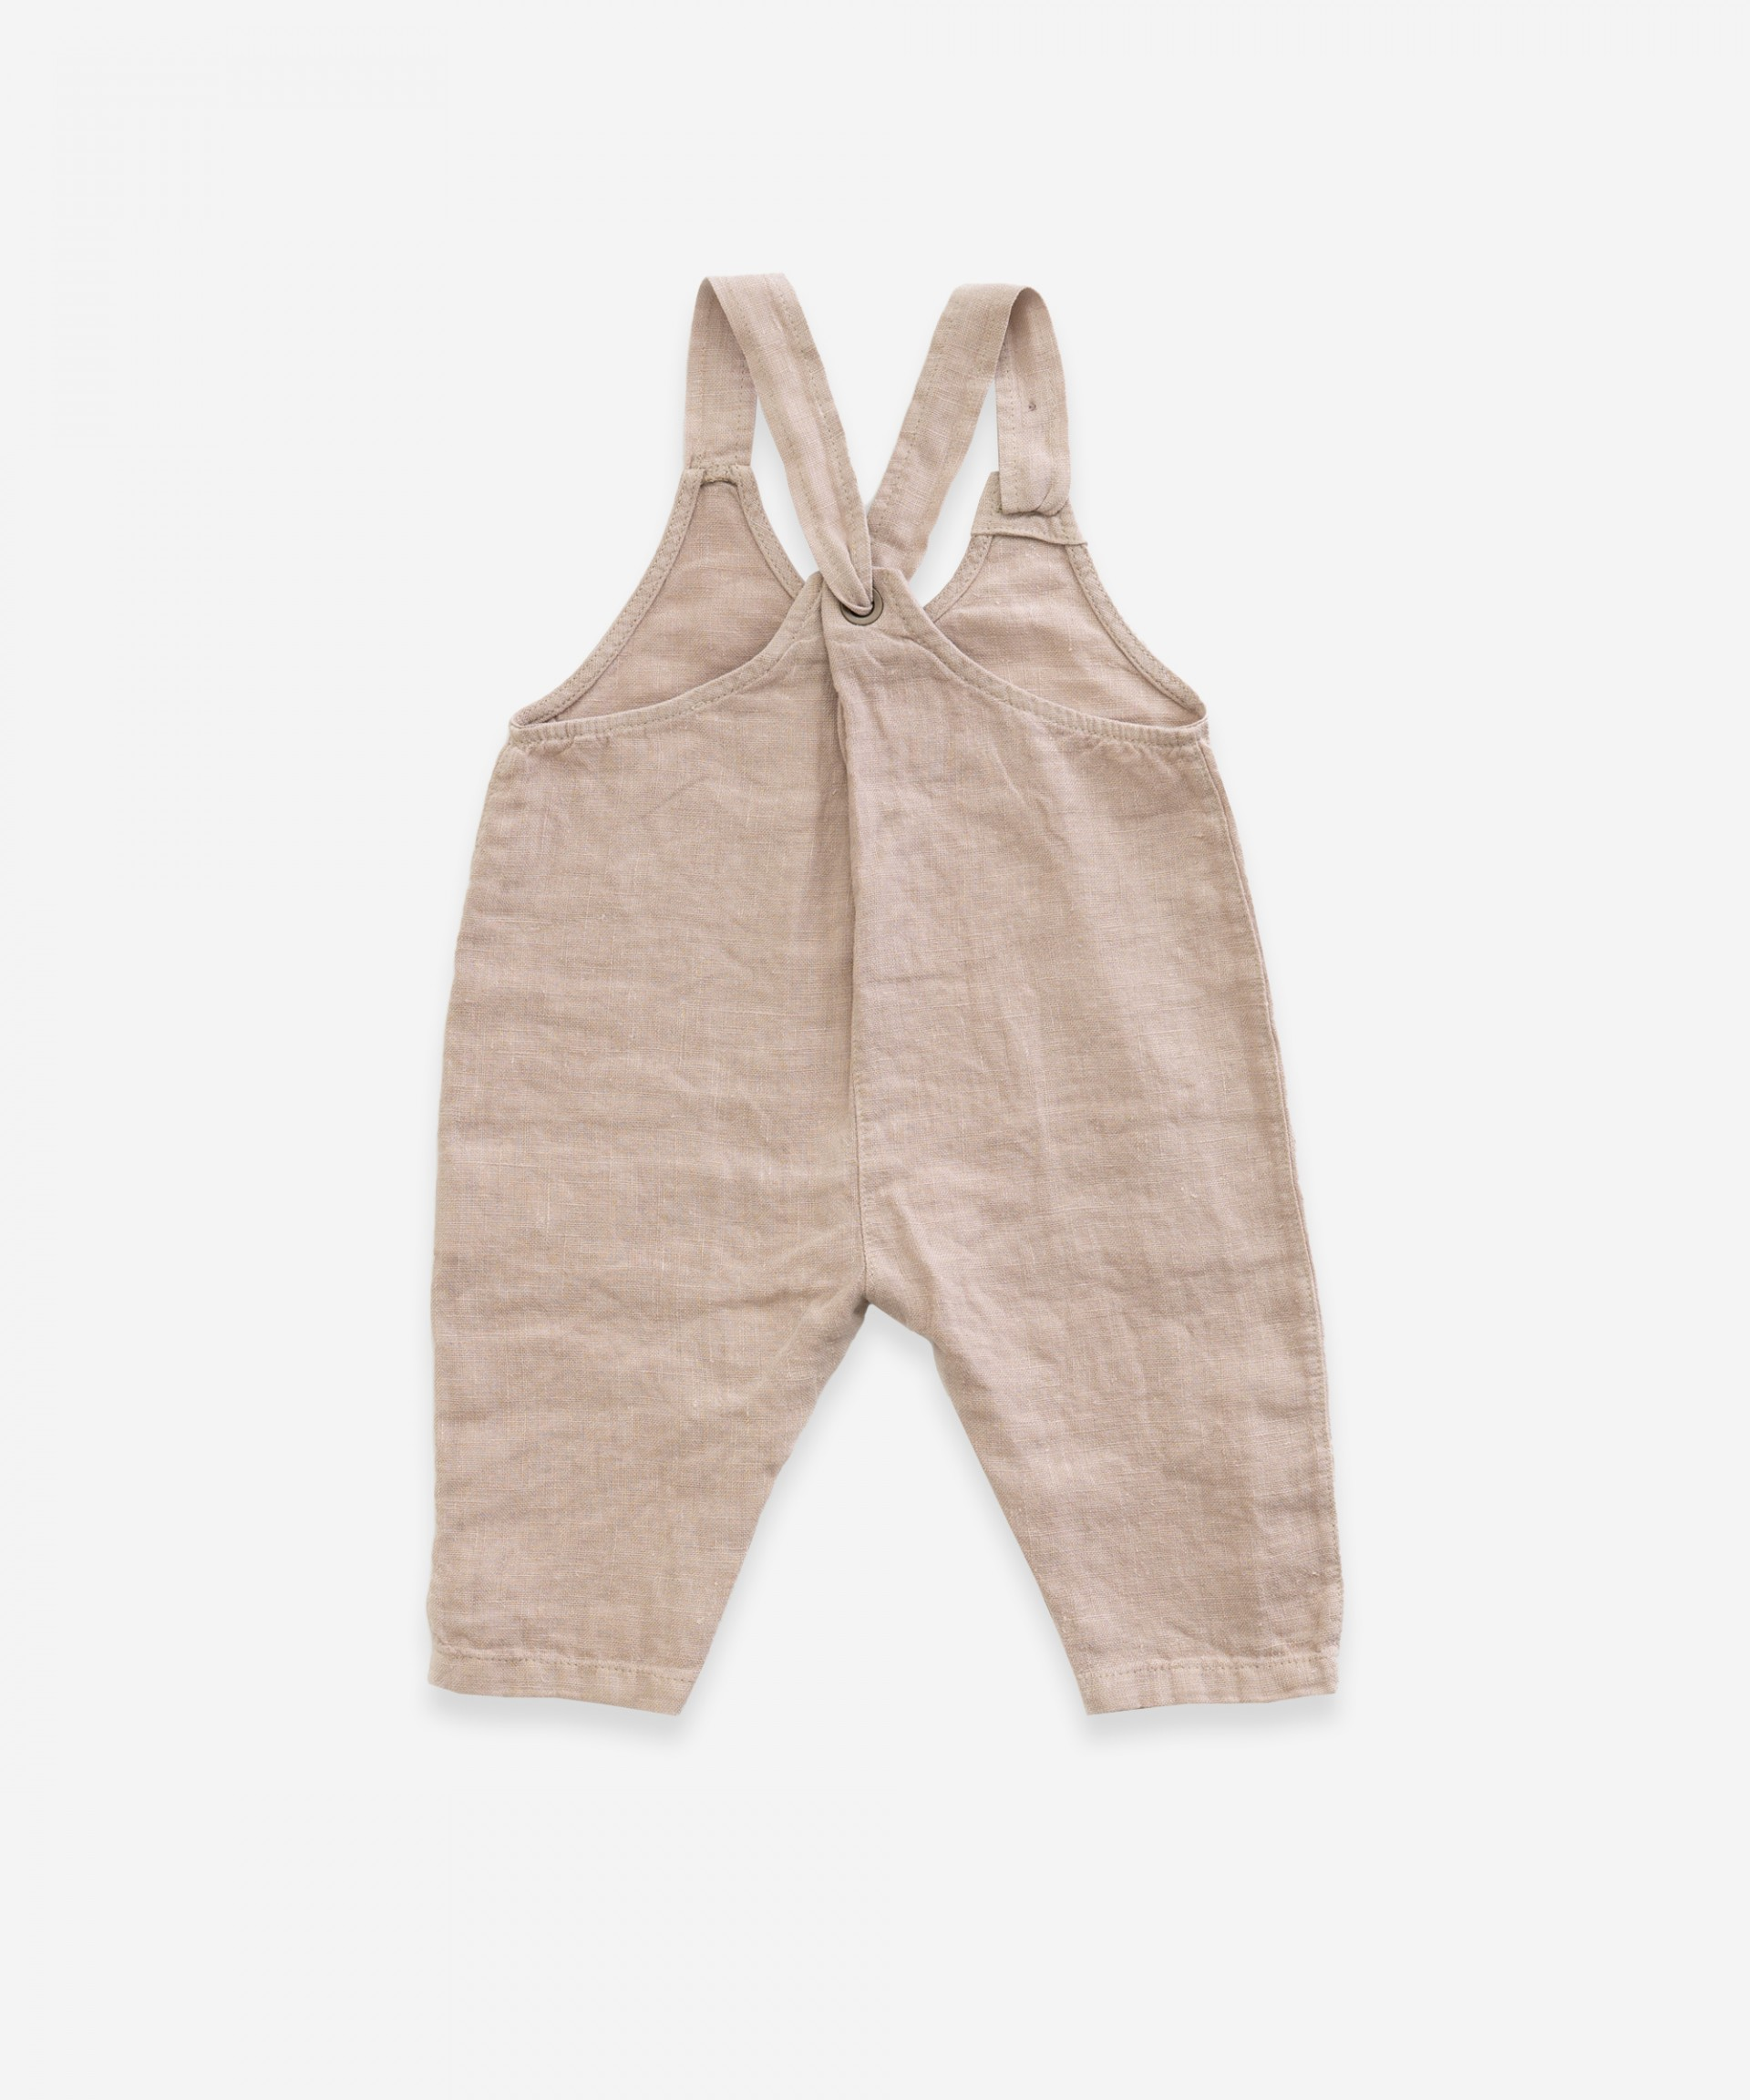 Jumpsuit in fabric | Weaving